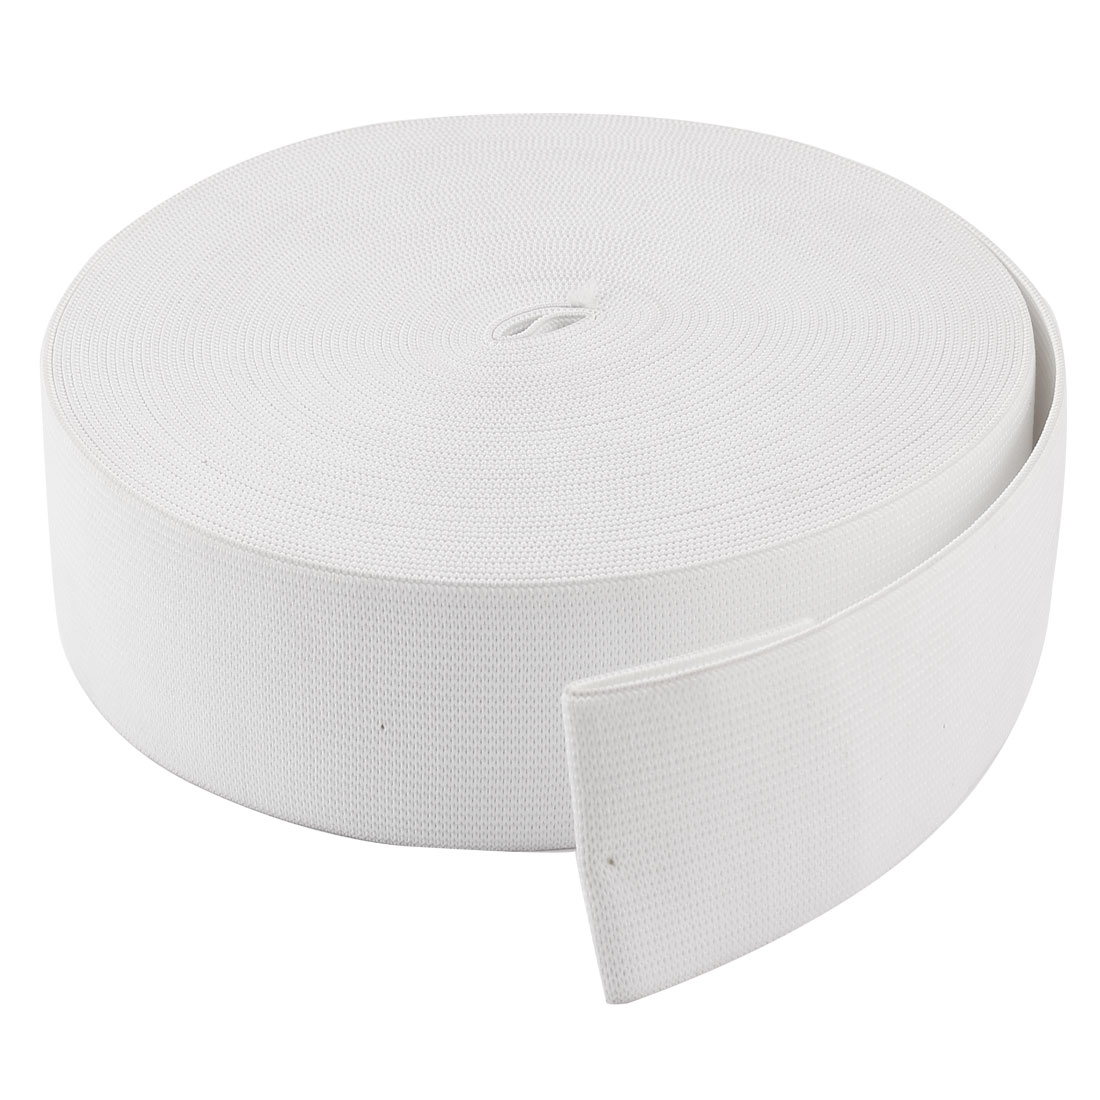 Household 50M 164Ft Length Stretchy Elastic Band Roll White 45mm Wide